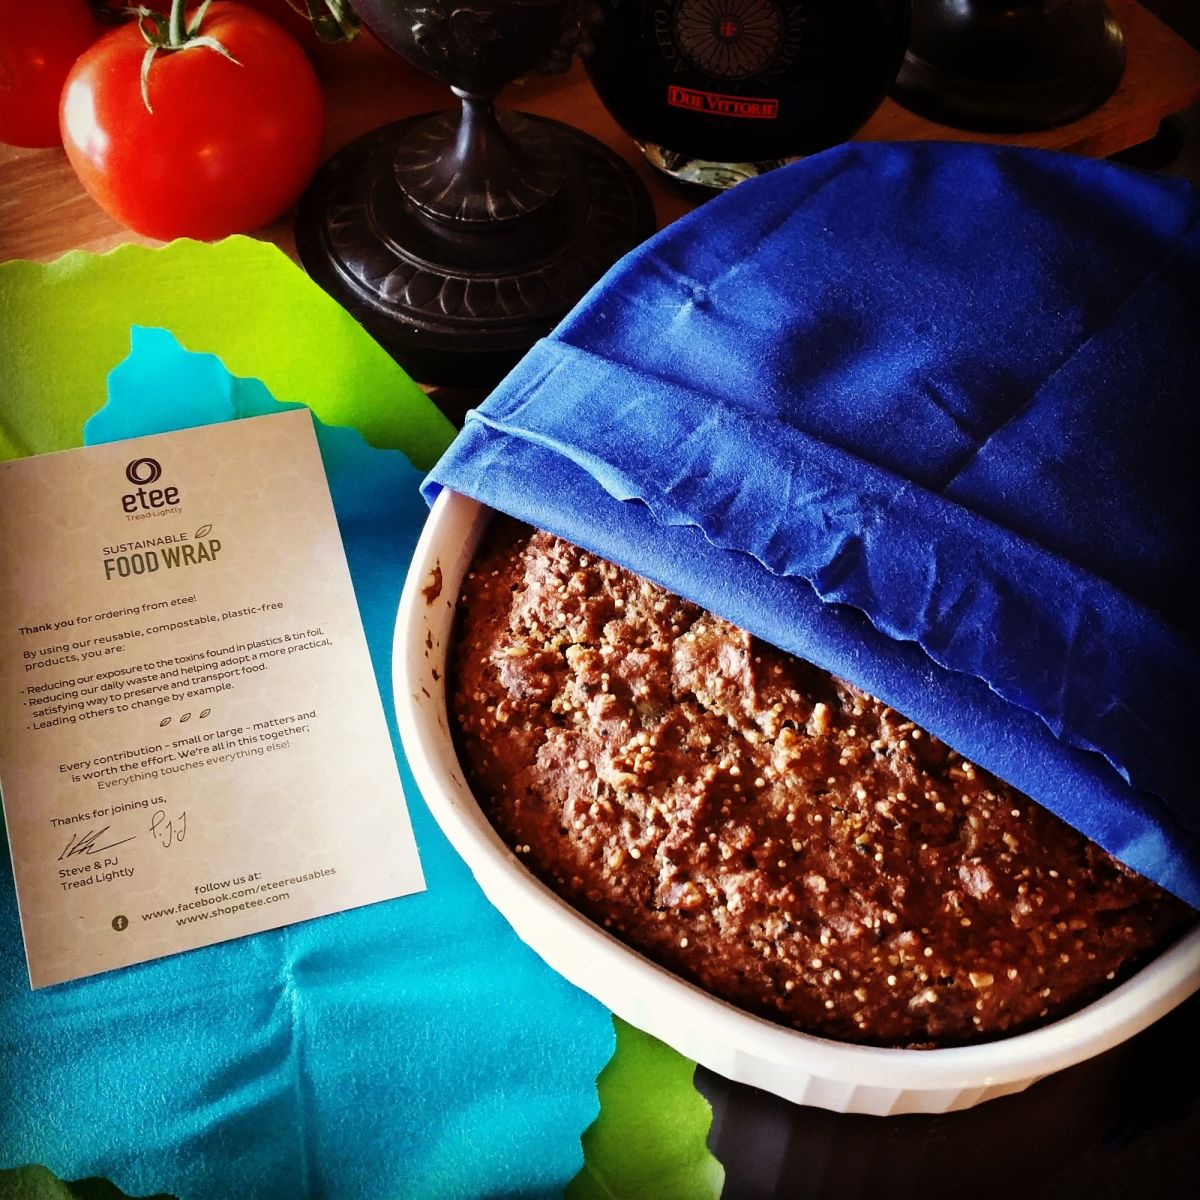 These days, I prefer to make our bread in a casserole dish that fits my sustainable food wrap. It beats plastic and keeps our bread fresh.